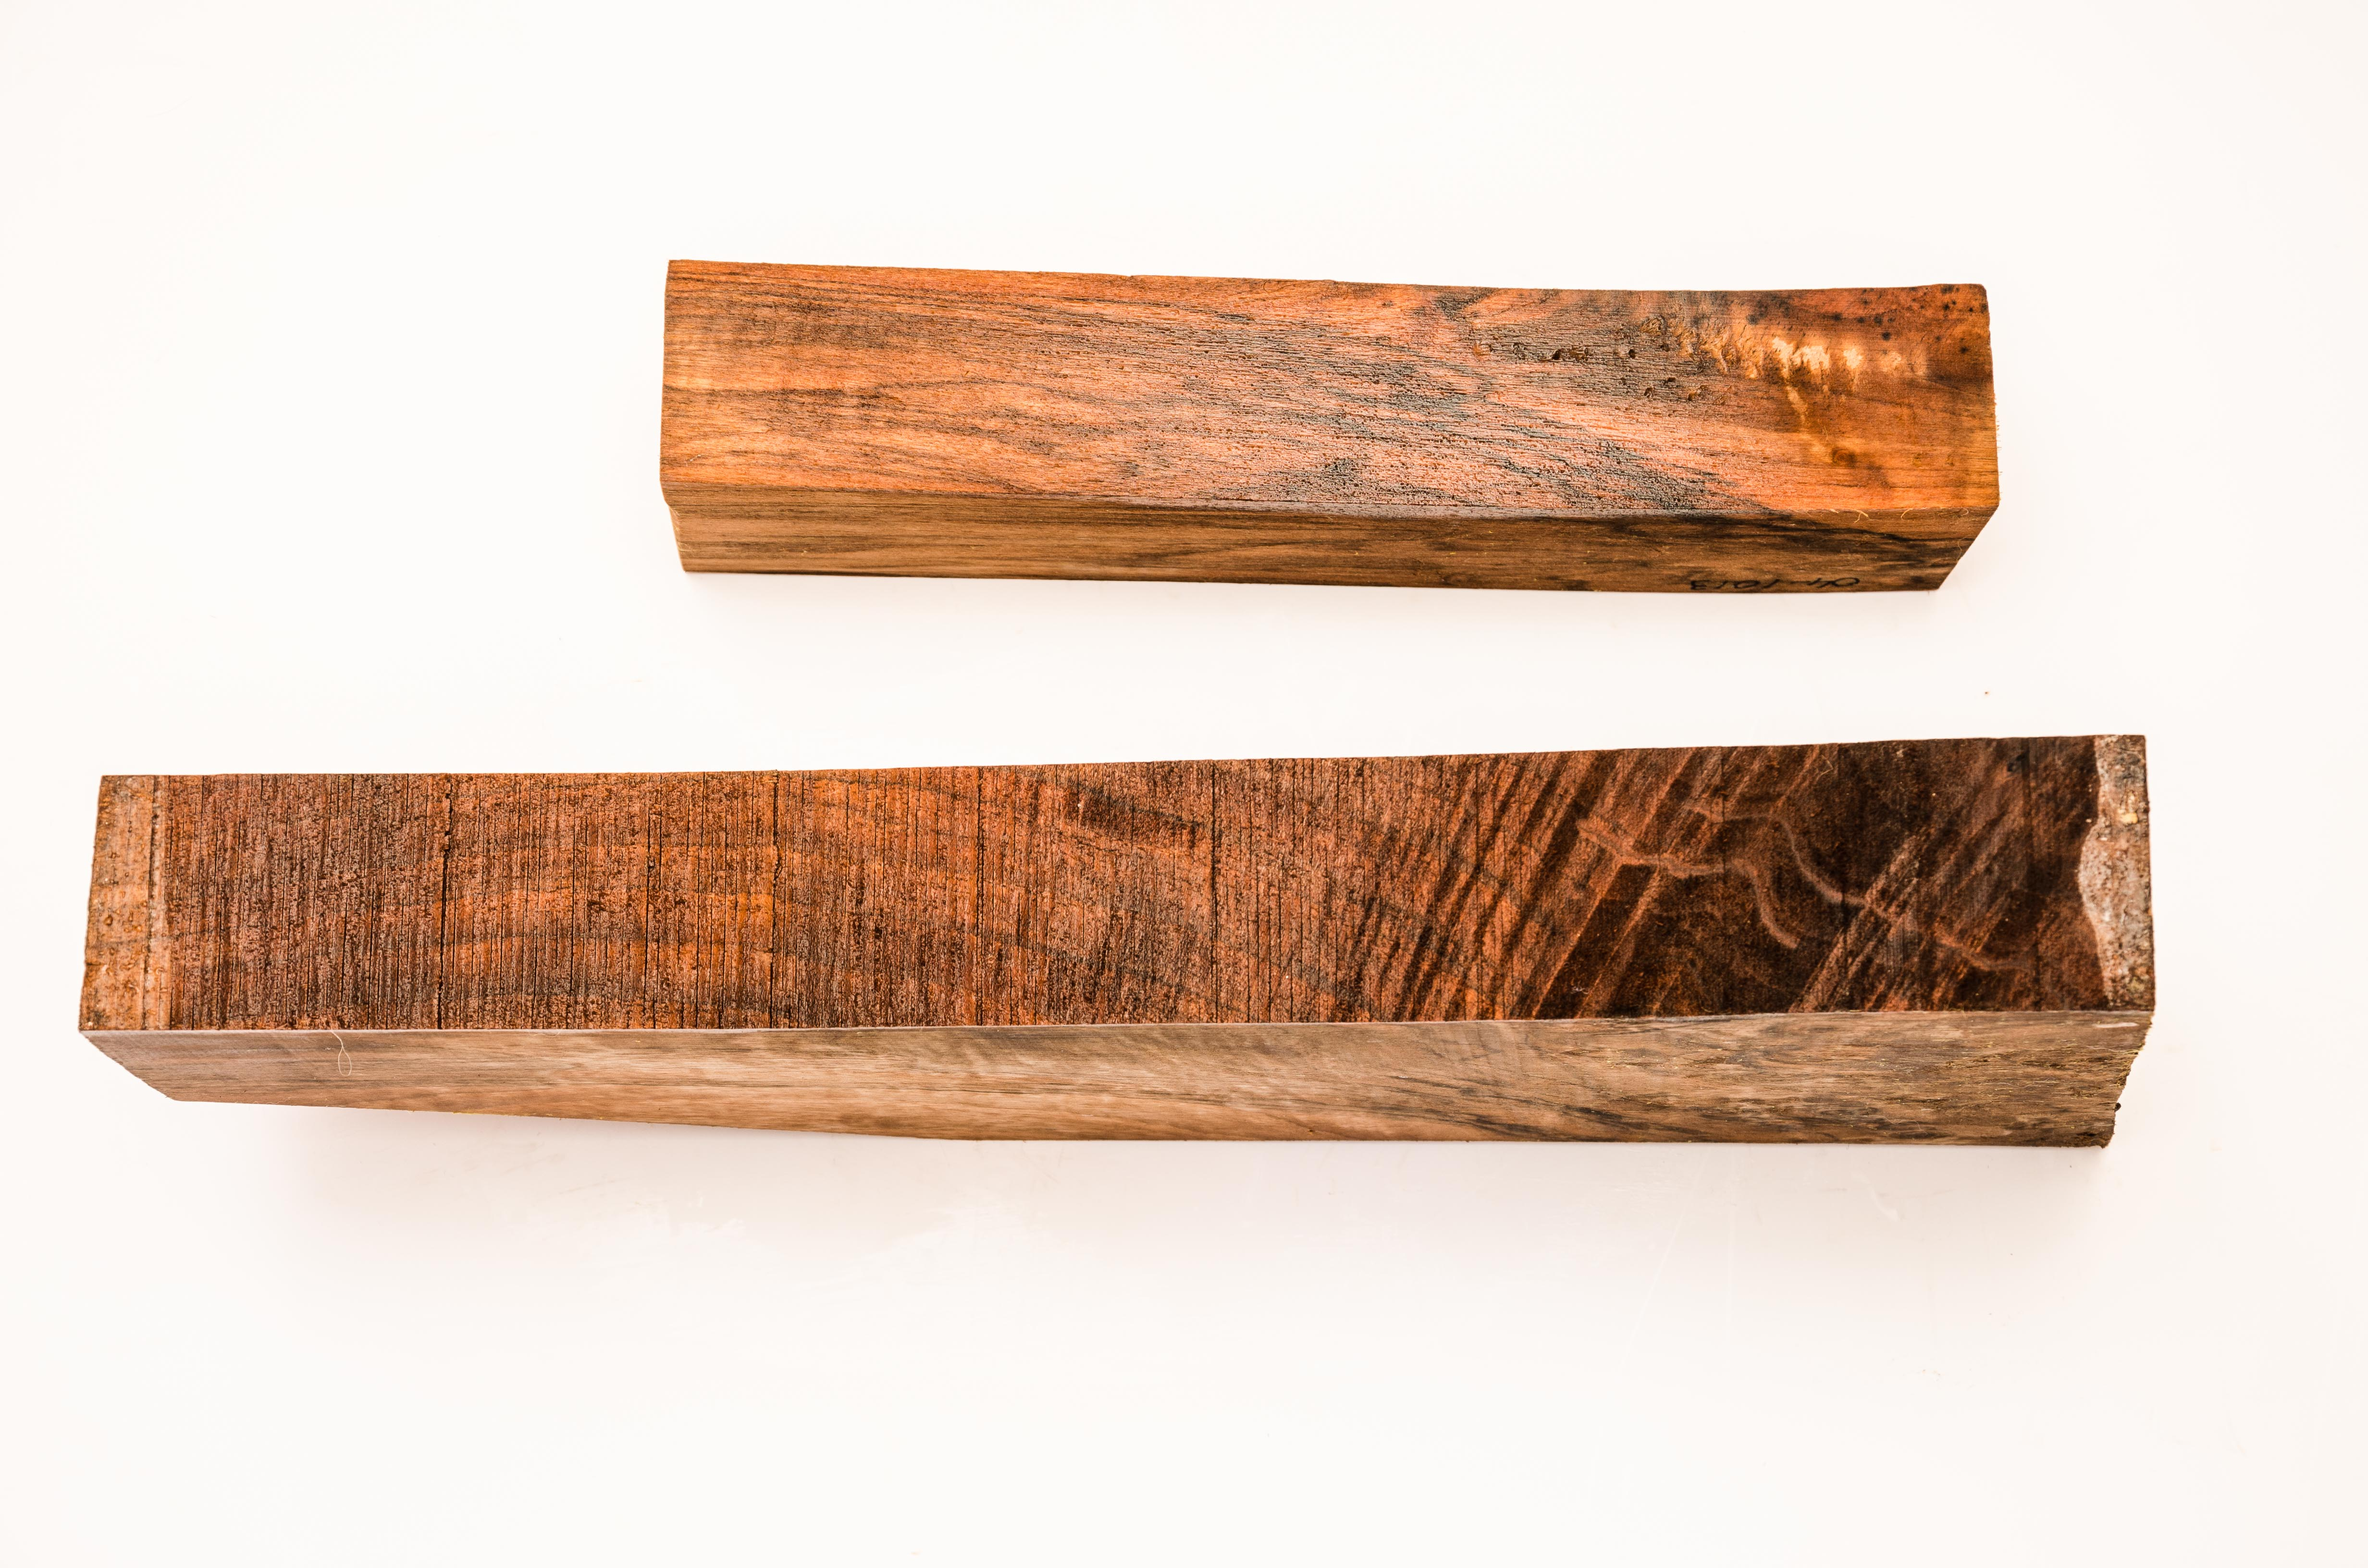 walnut_stock_blanks_for_guns_and_rifles-0390